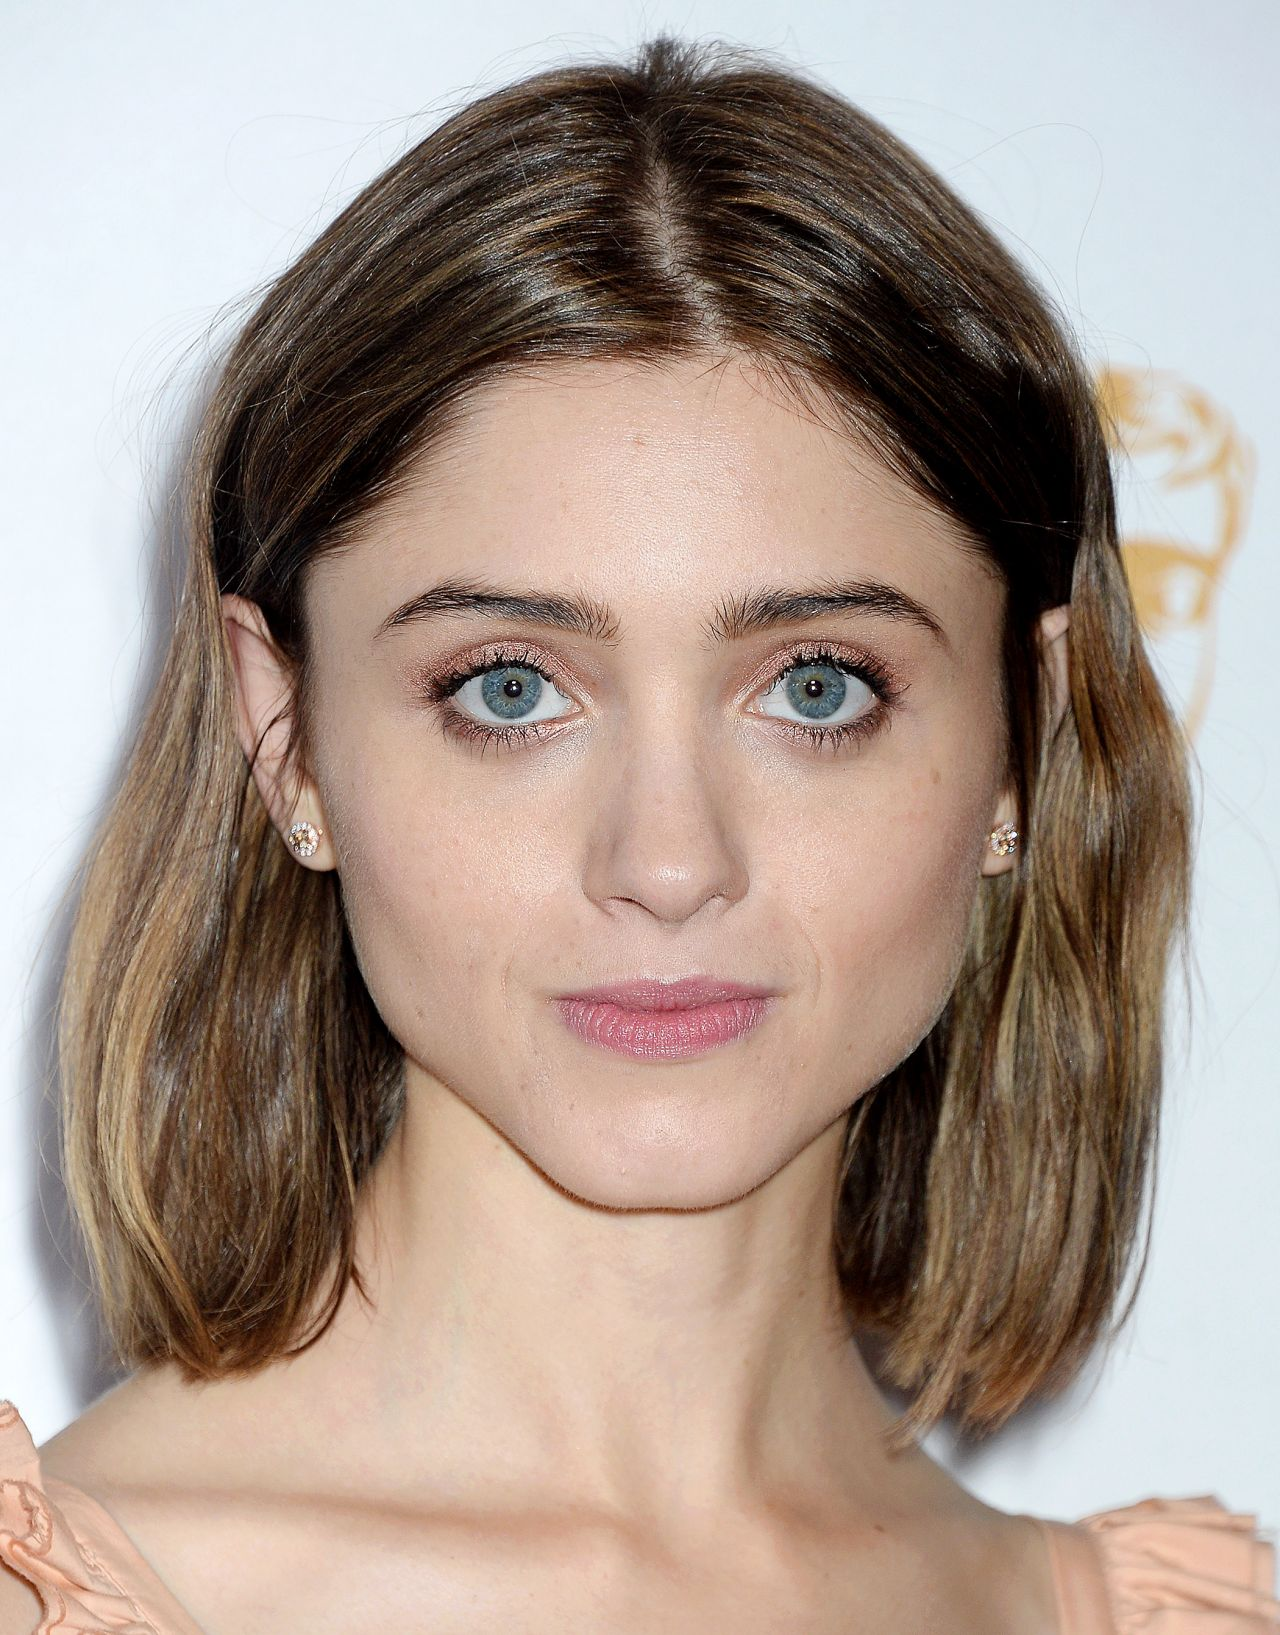 Natalia Dyer Bafta Tea Party In Los Angeles 09 16 2017